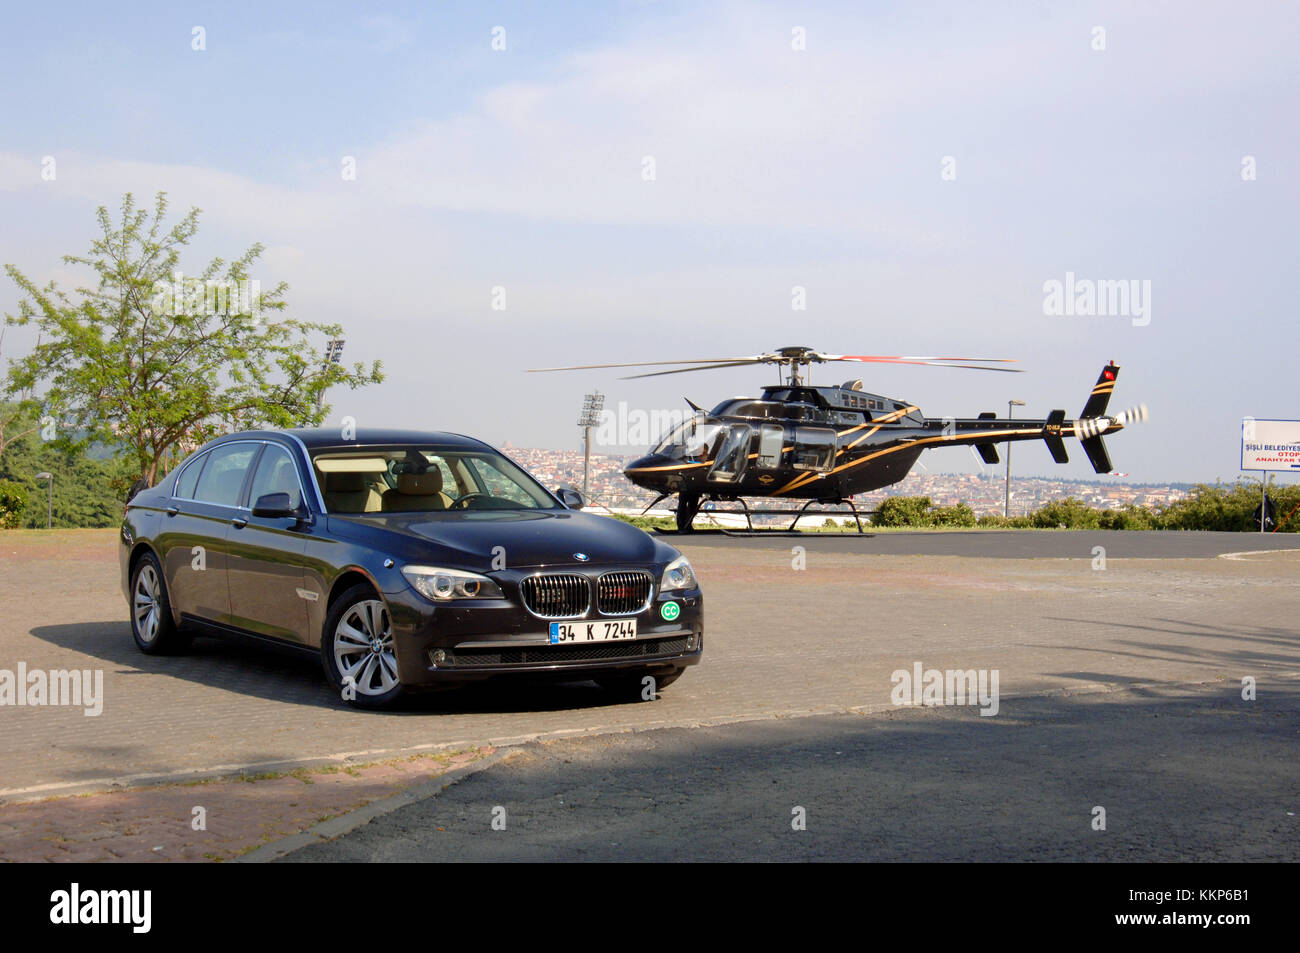 Helicopter waiting to transfer VIP passengers to a BMW 730 LD long wheelbase limo in Istanbul - Stock Image